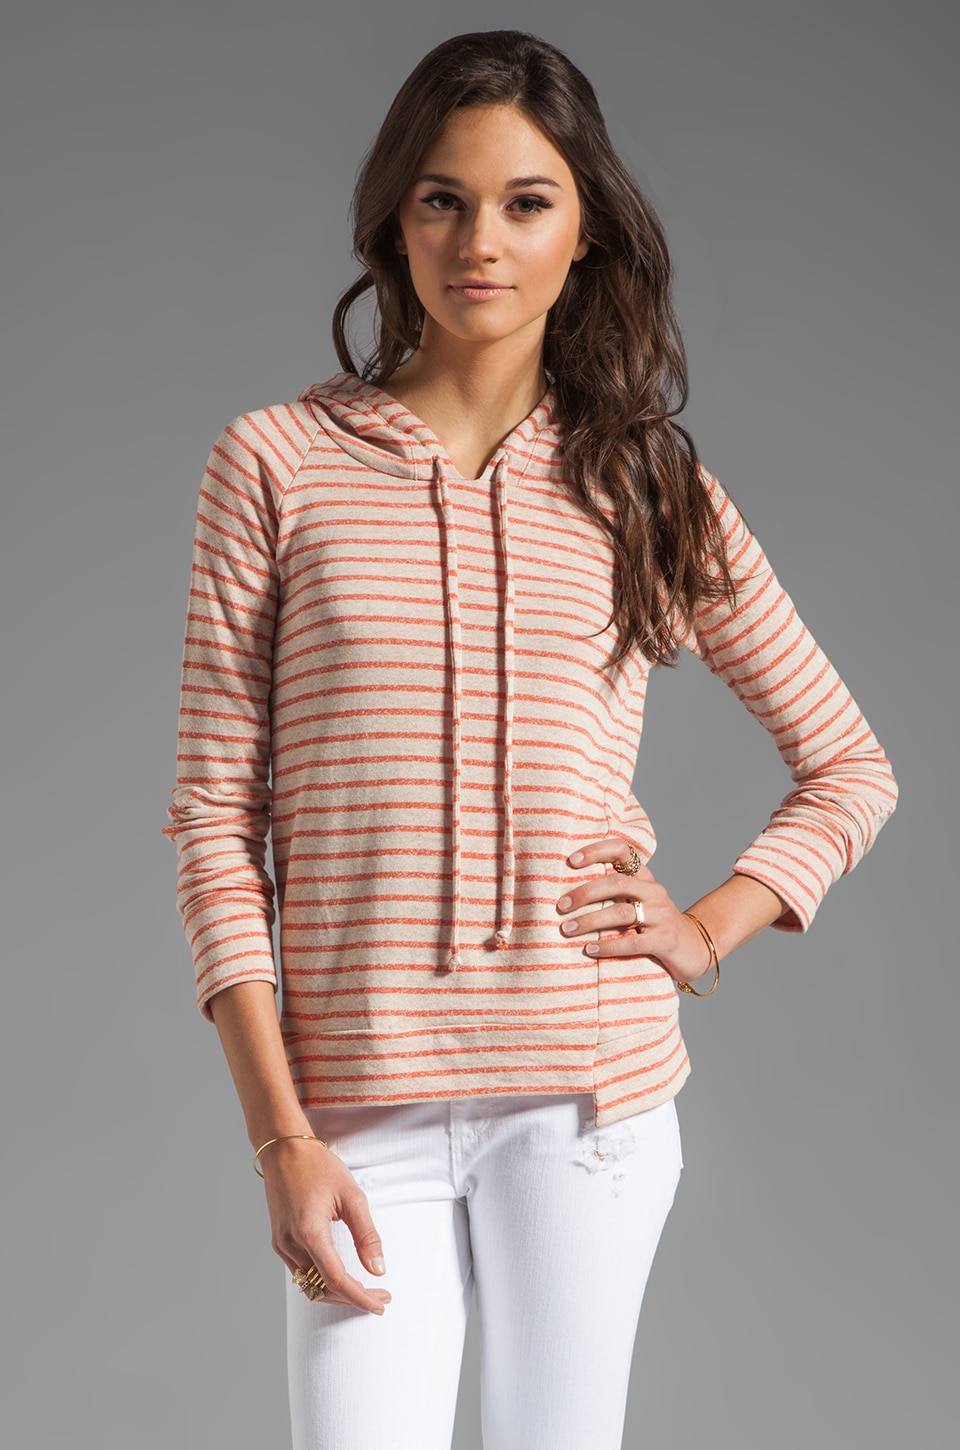 Whetherly Andrea French Terry Top in Orange/Oatmeal